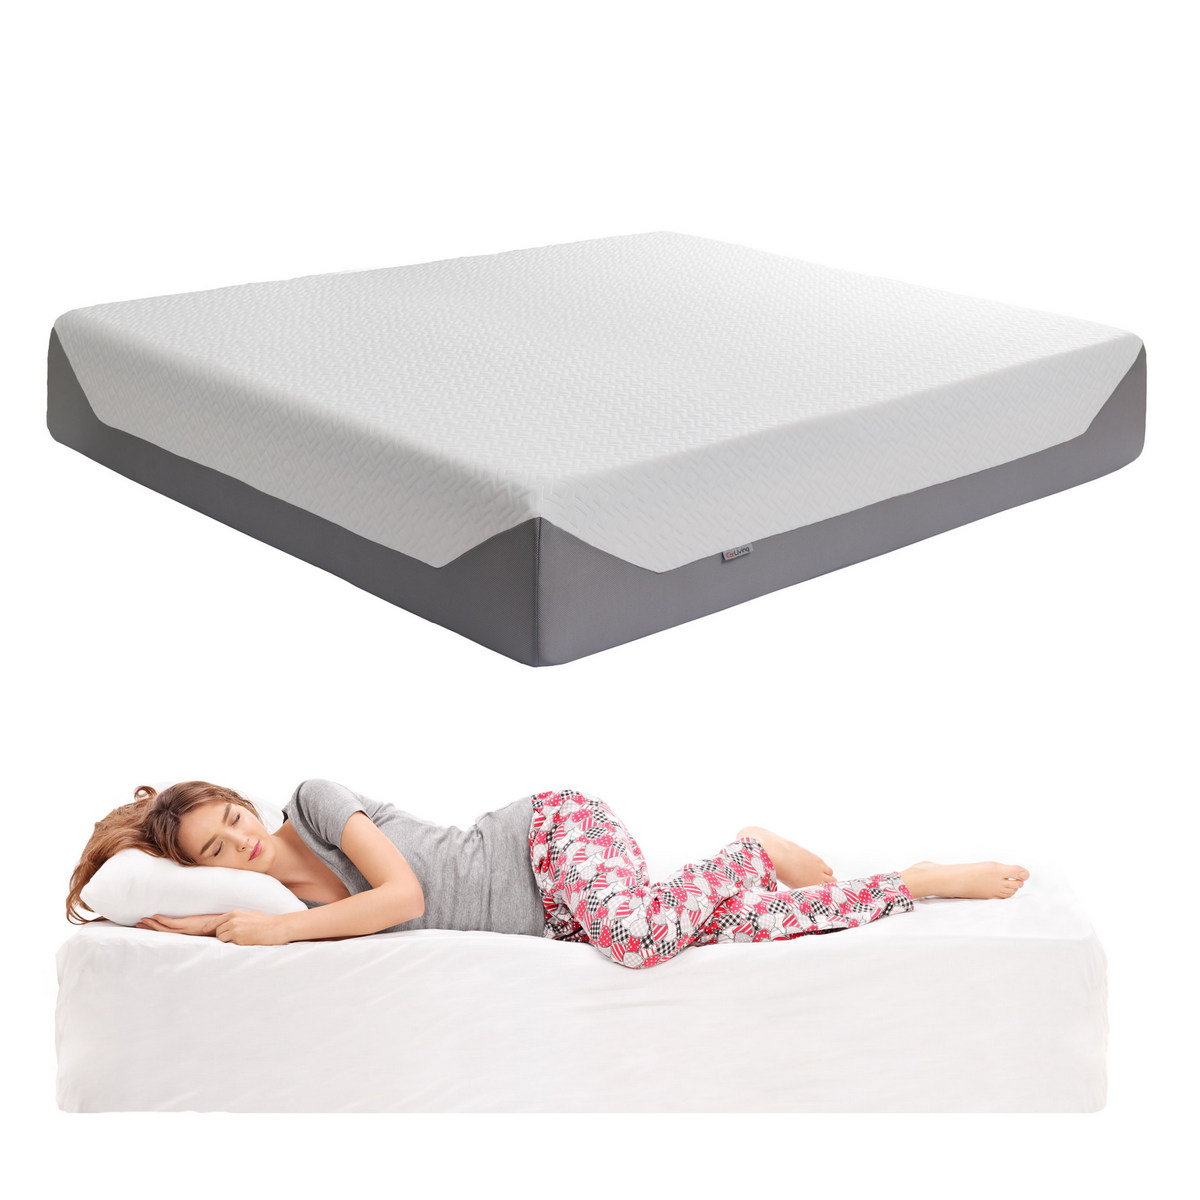 Corliving Sleep King Medium Firm Memory Foam Mattress